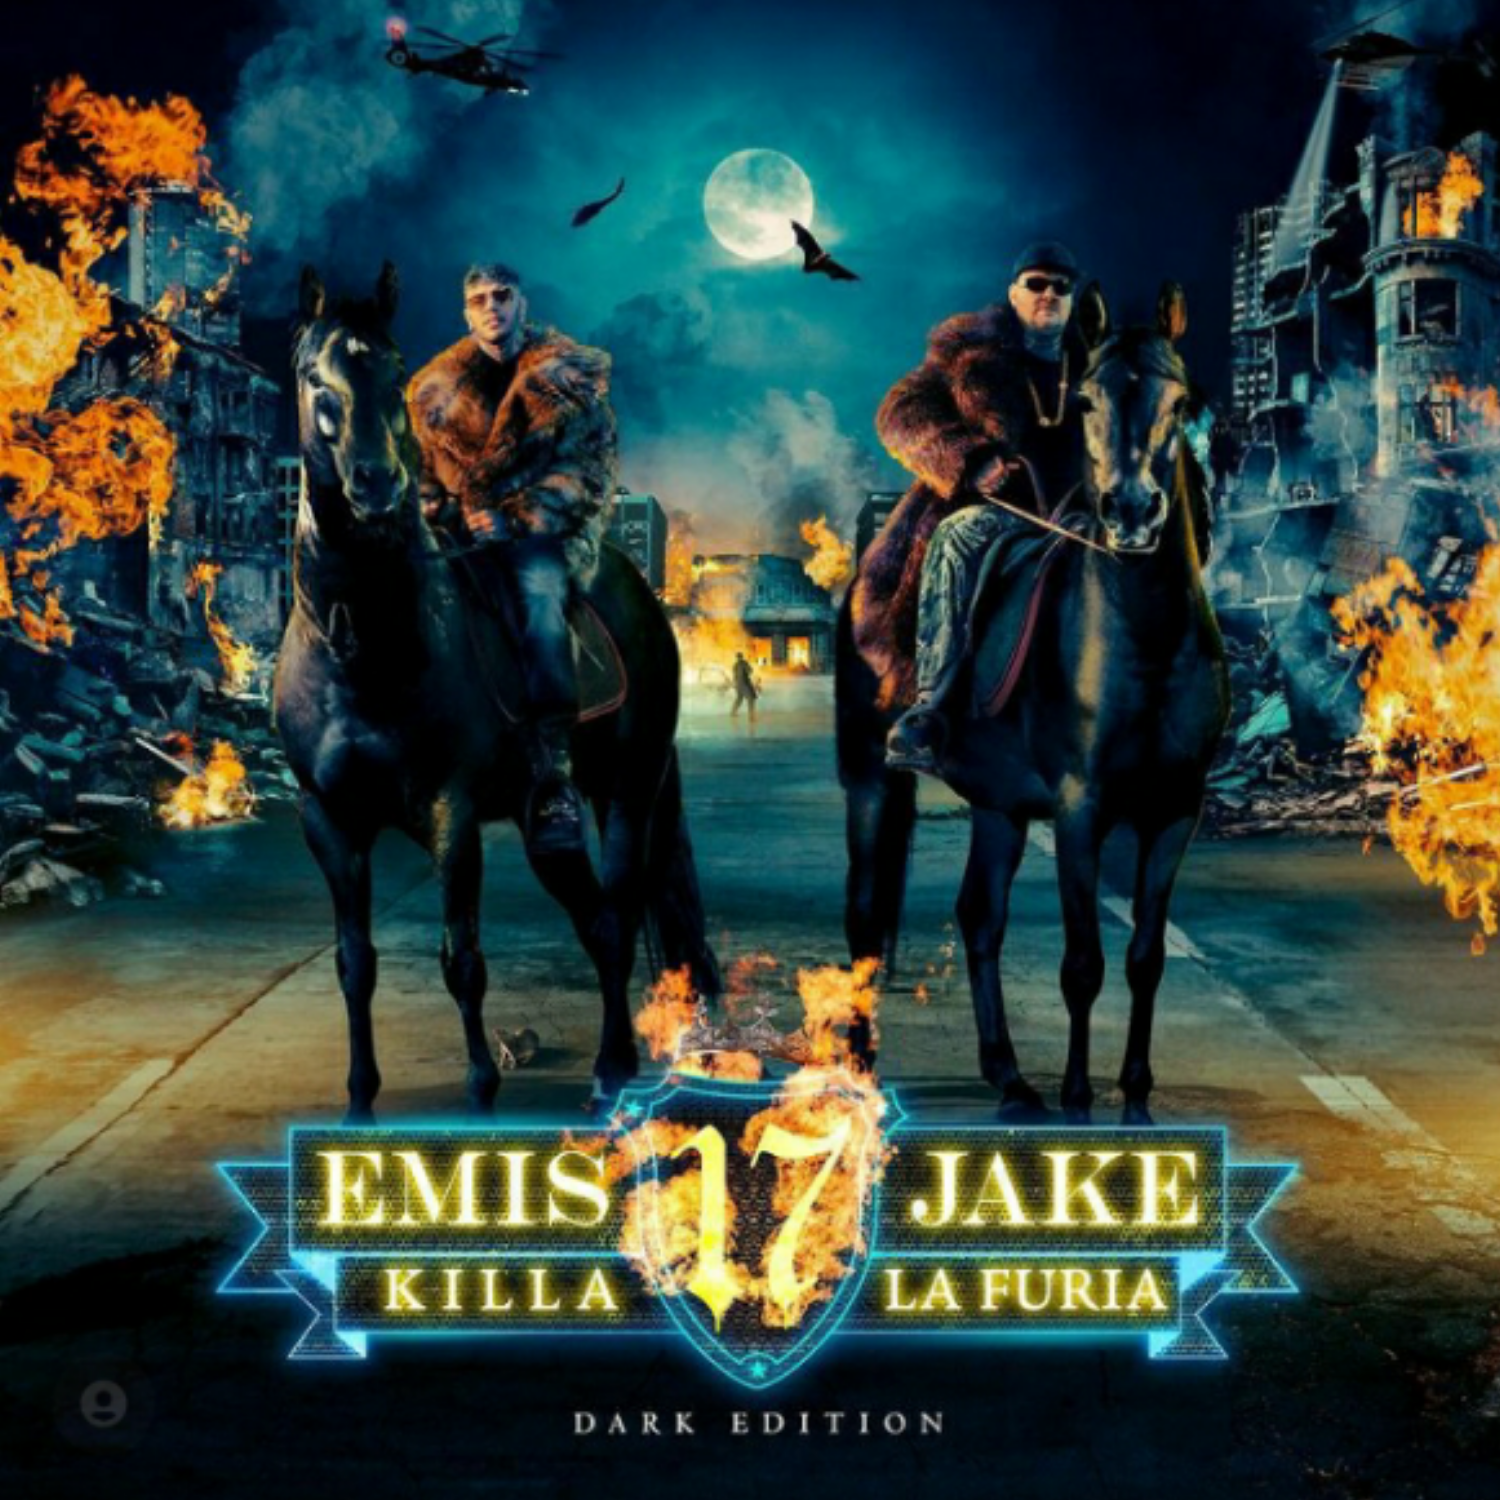 EMIS KILLA & JAKE LA FURIA - 17 (DARK EDITION 2 CD + 17 DARK EDI